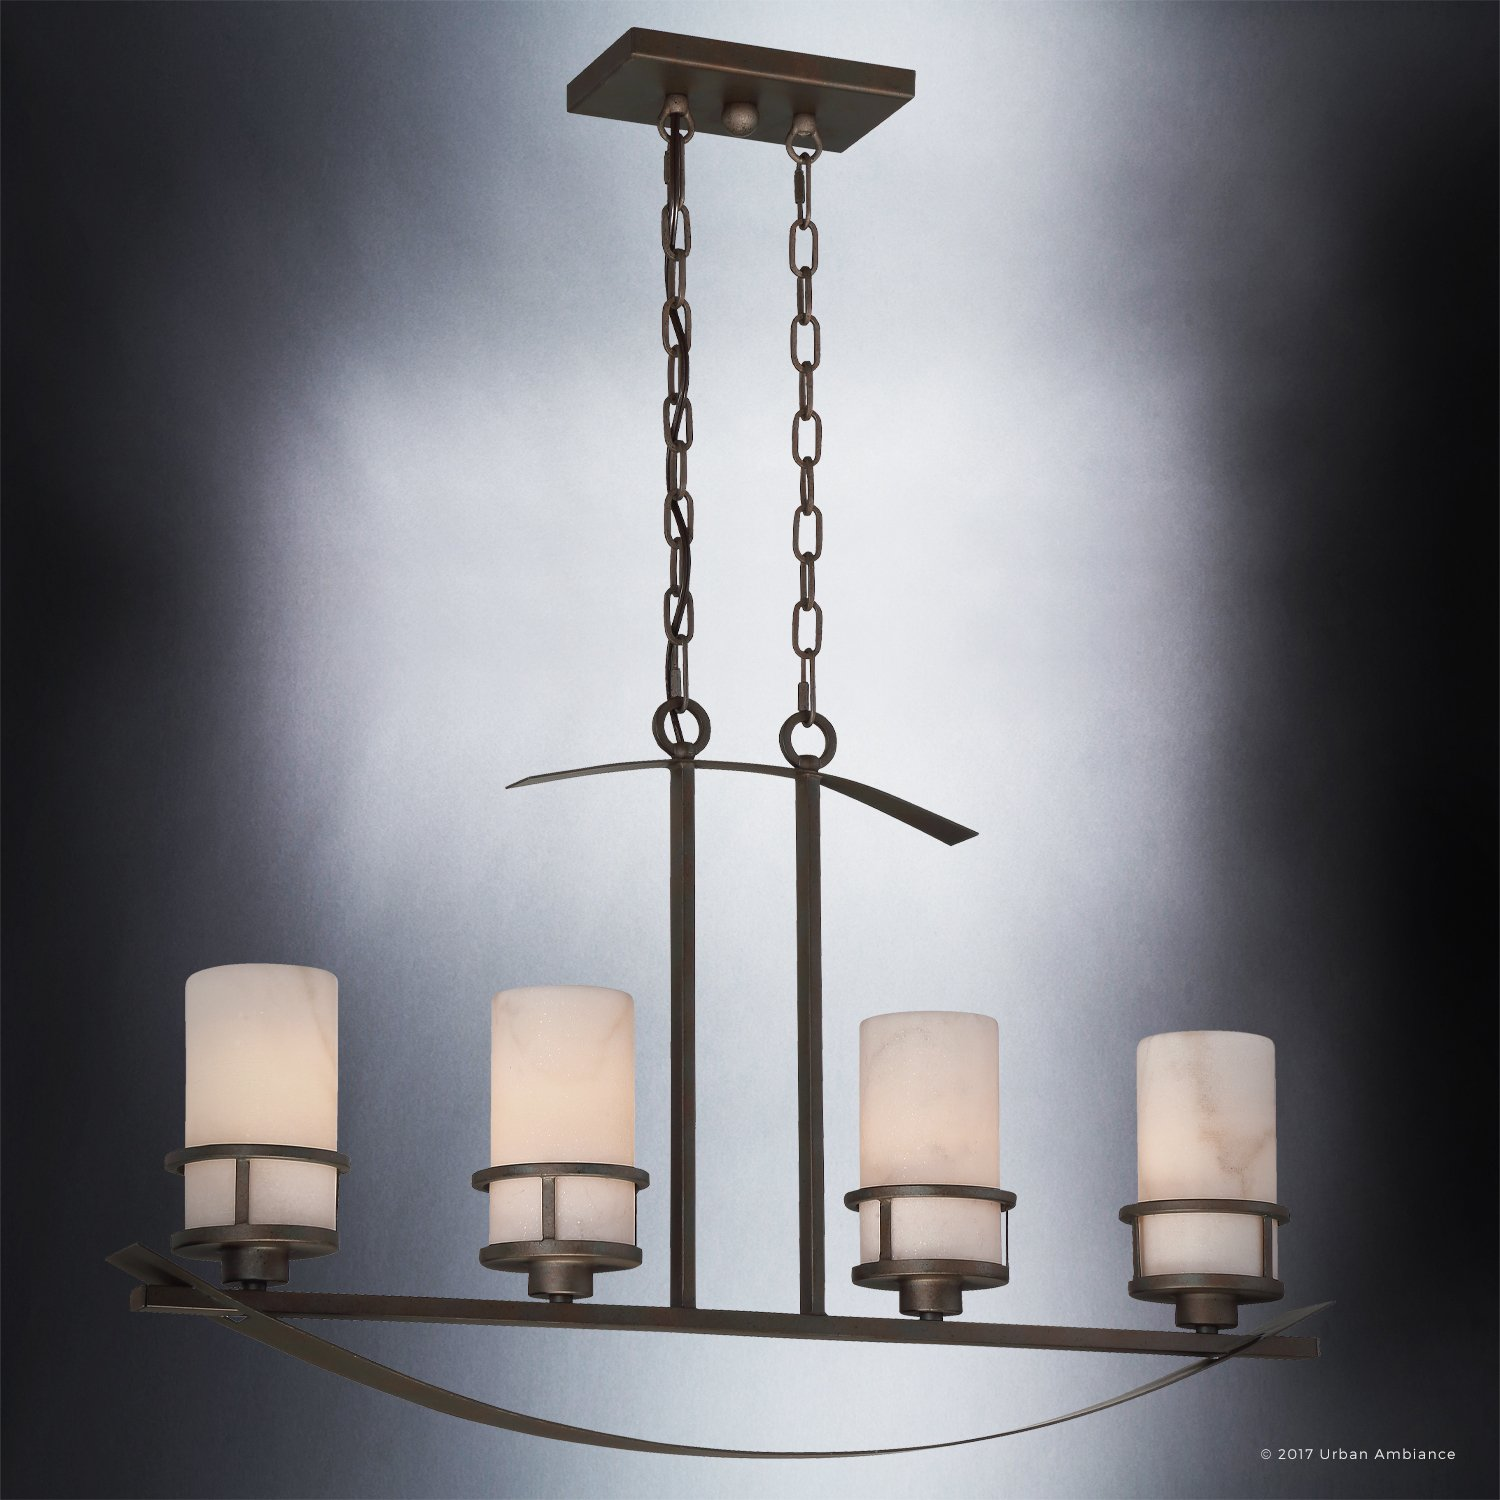 Luxury Rustic Chandelier, Large Size: 18.5''H x 32.5''W, with Craftsman Style Elements, Banded Wrought Iron Design, Forged Iron Finish and White Onyx Stone Shades, UQL2415 by Urban Ambiance by Urban Ambiance (Image #3)